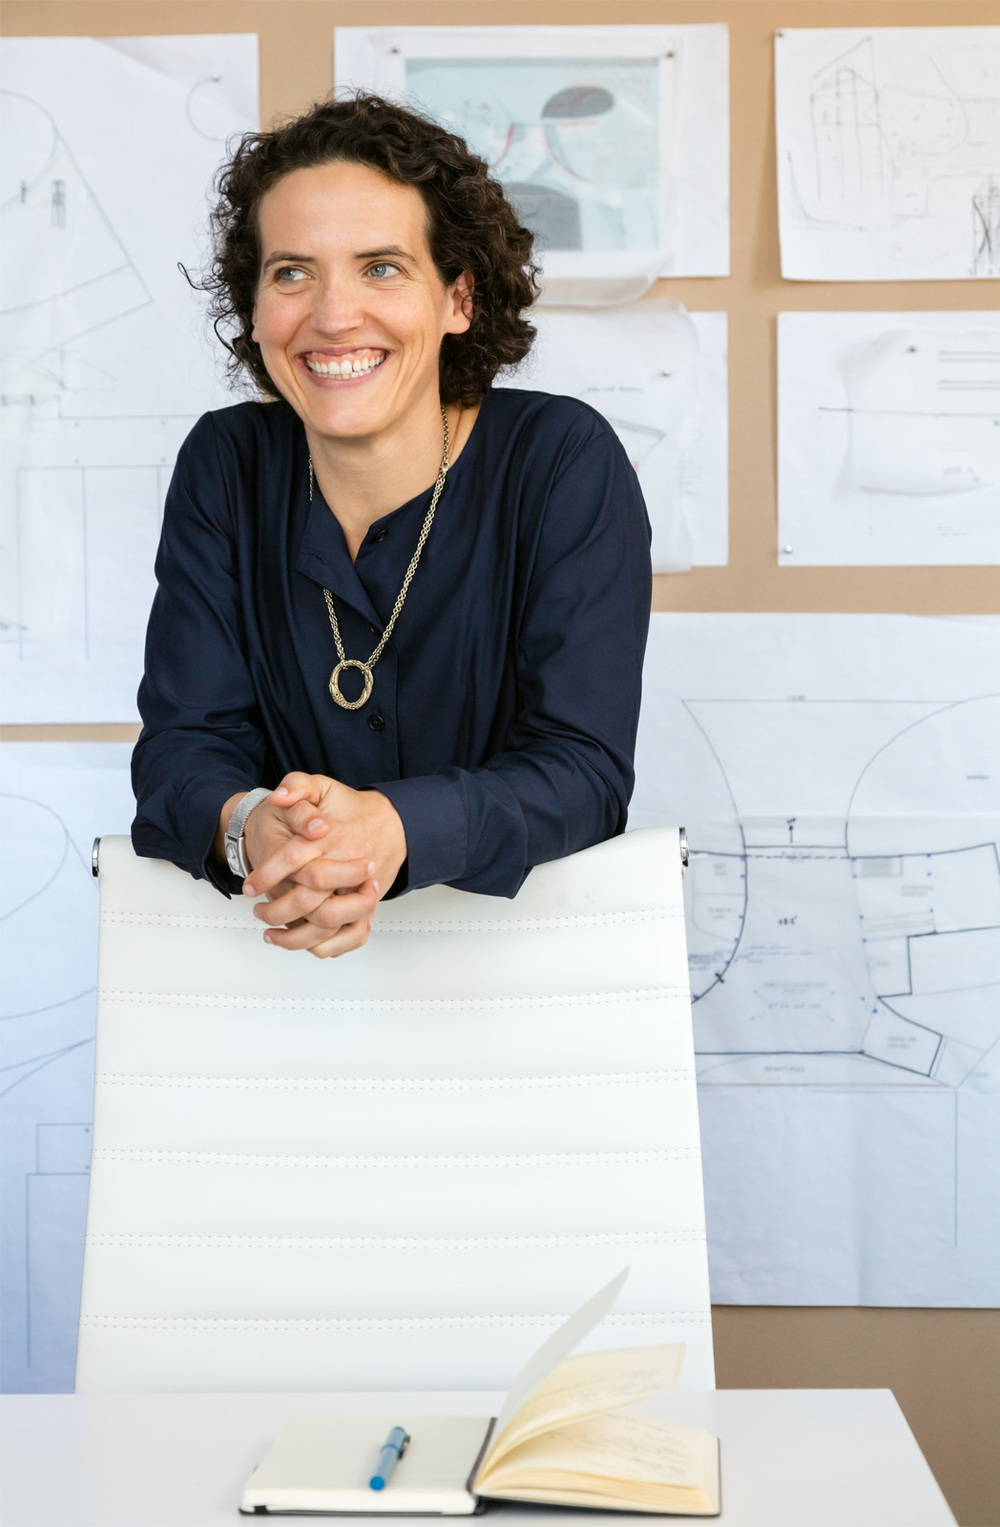 Katy H. Faix, AIA   photo by Blake Marvin